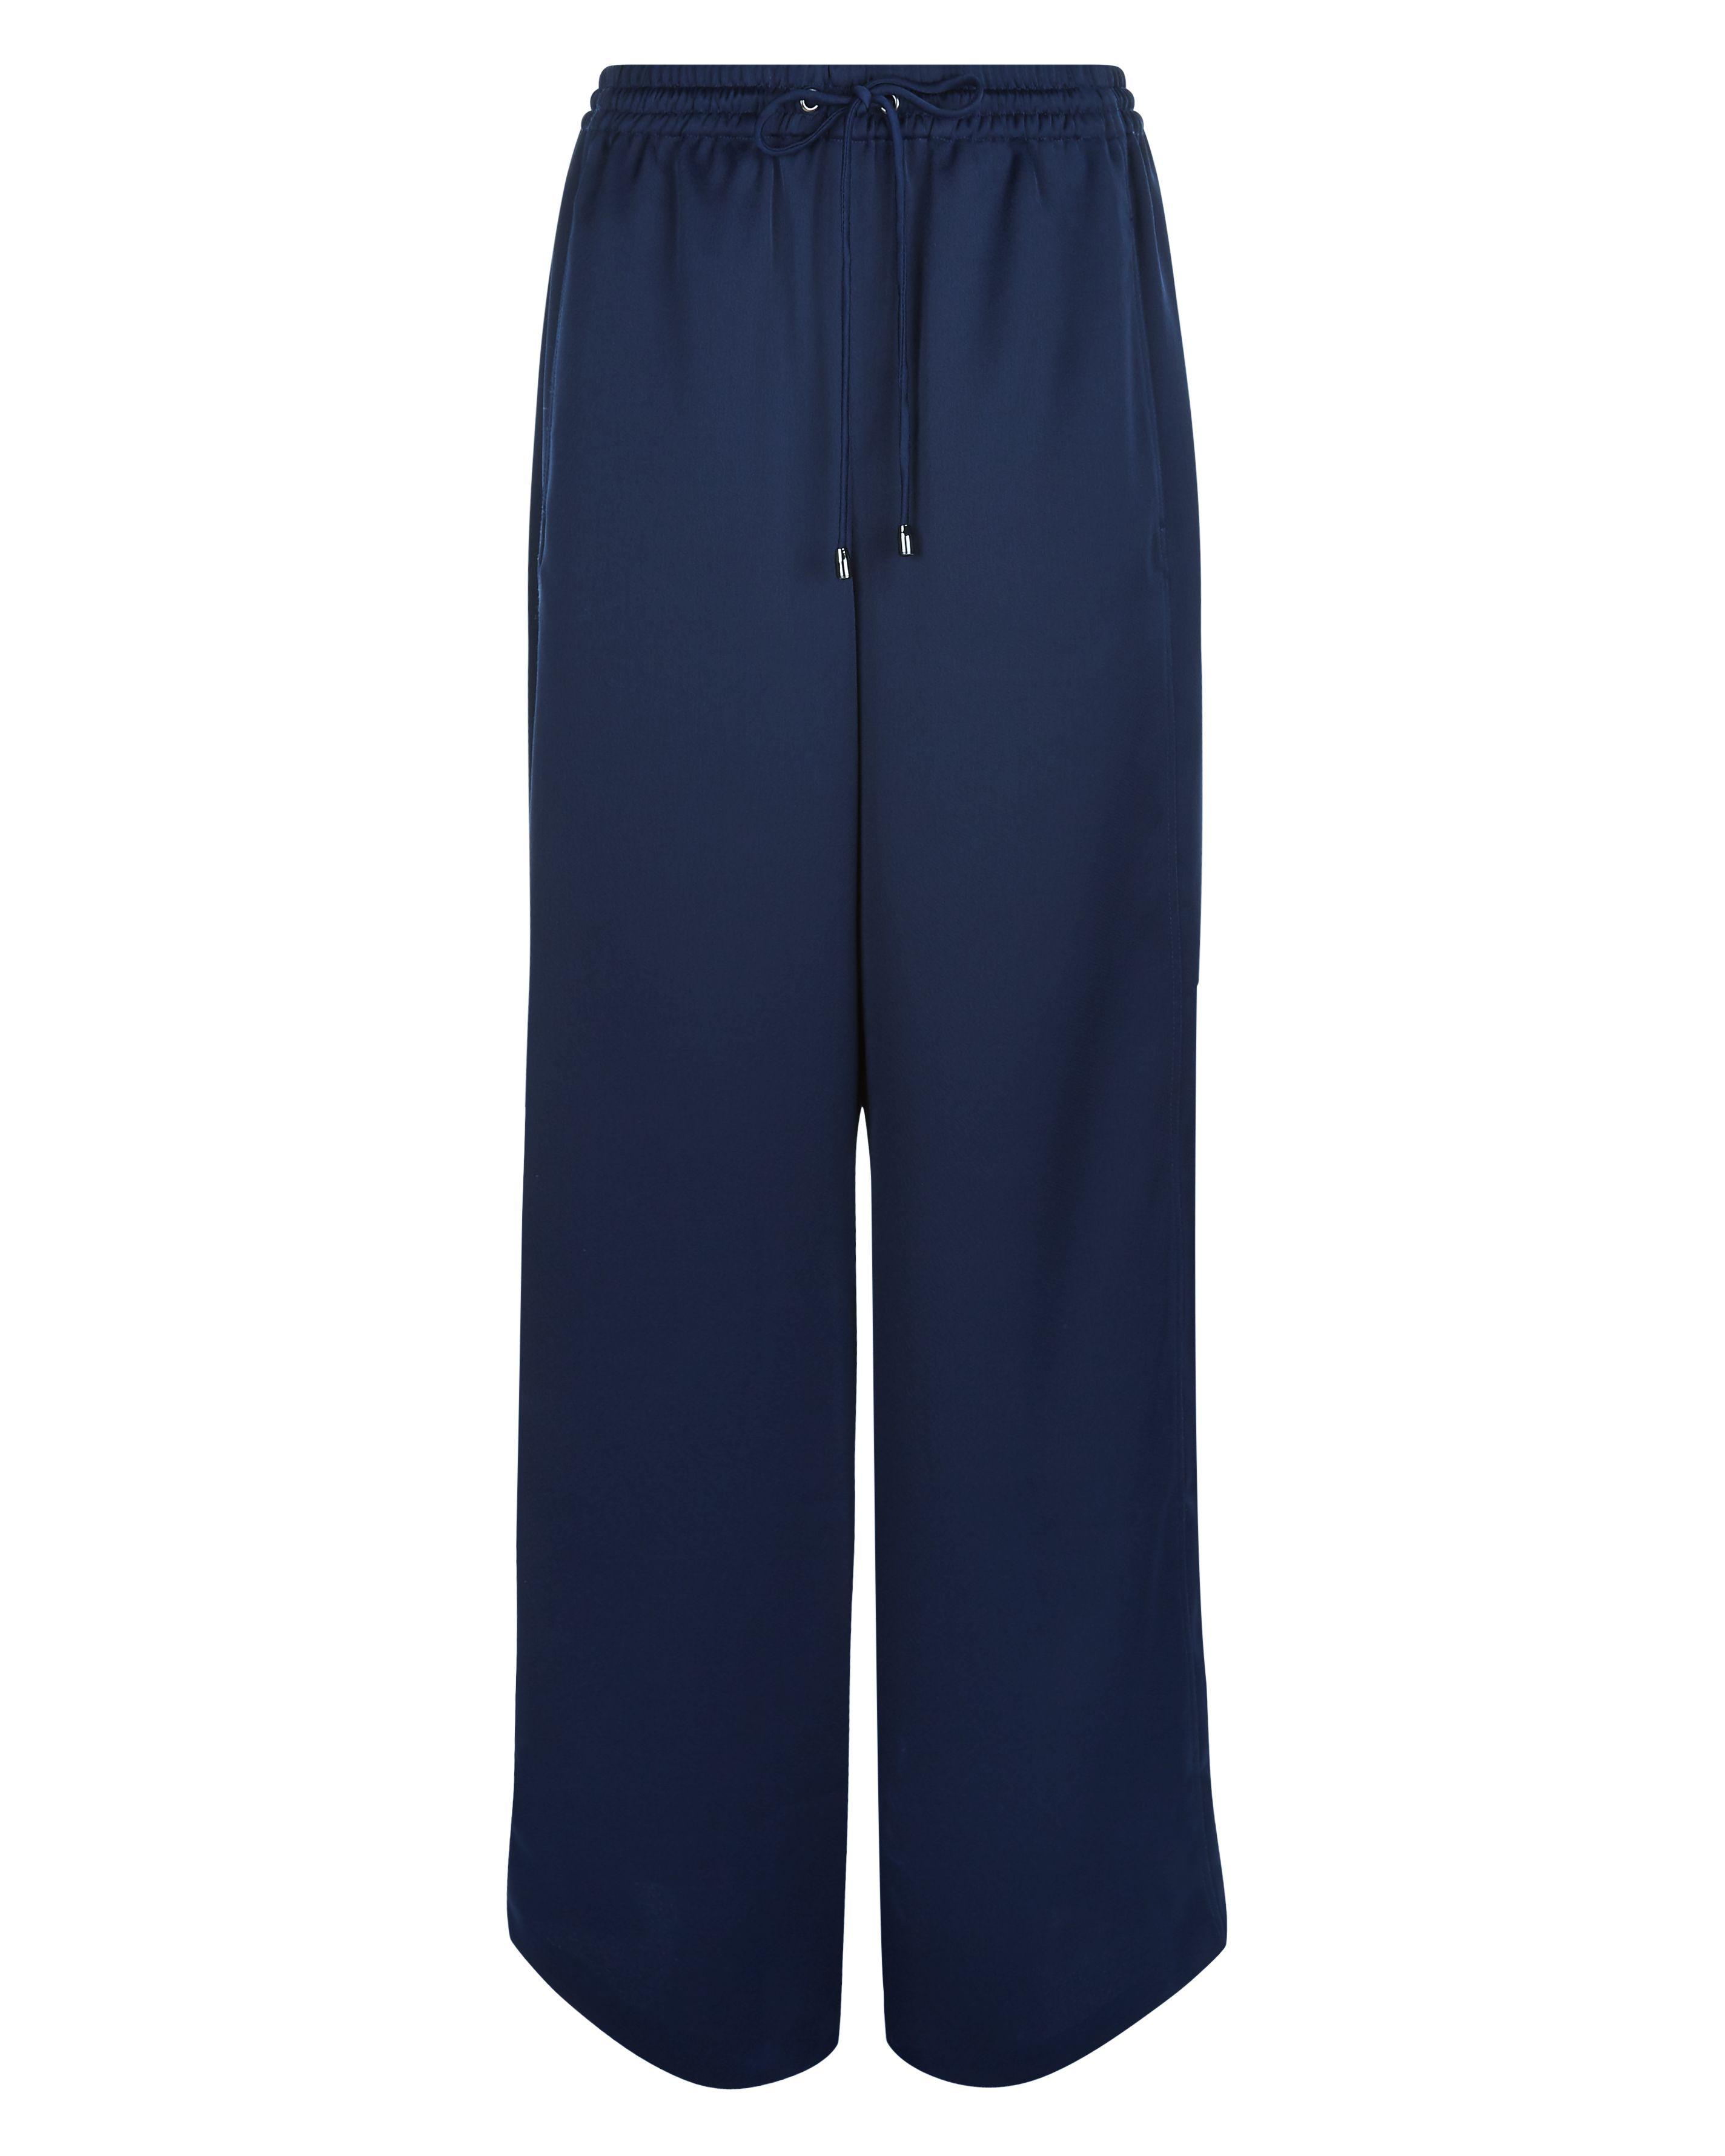 Jaeger Top-Stitch Seam Detail Joggers, Blue